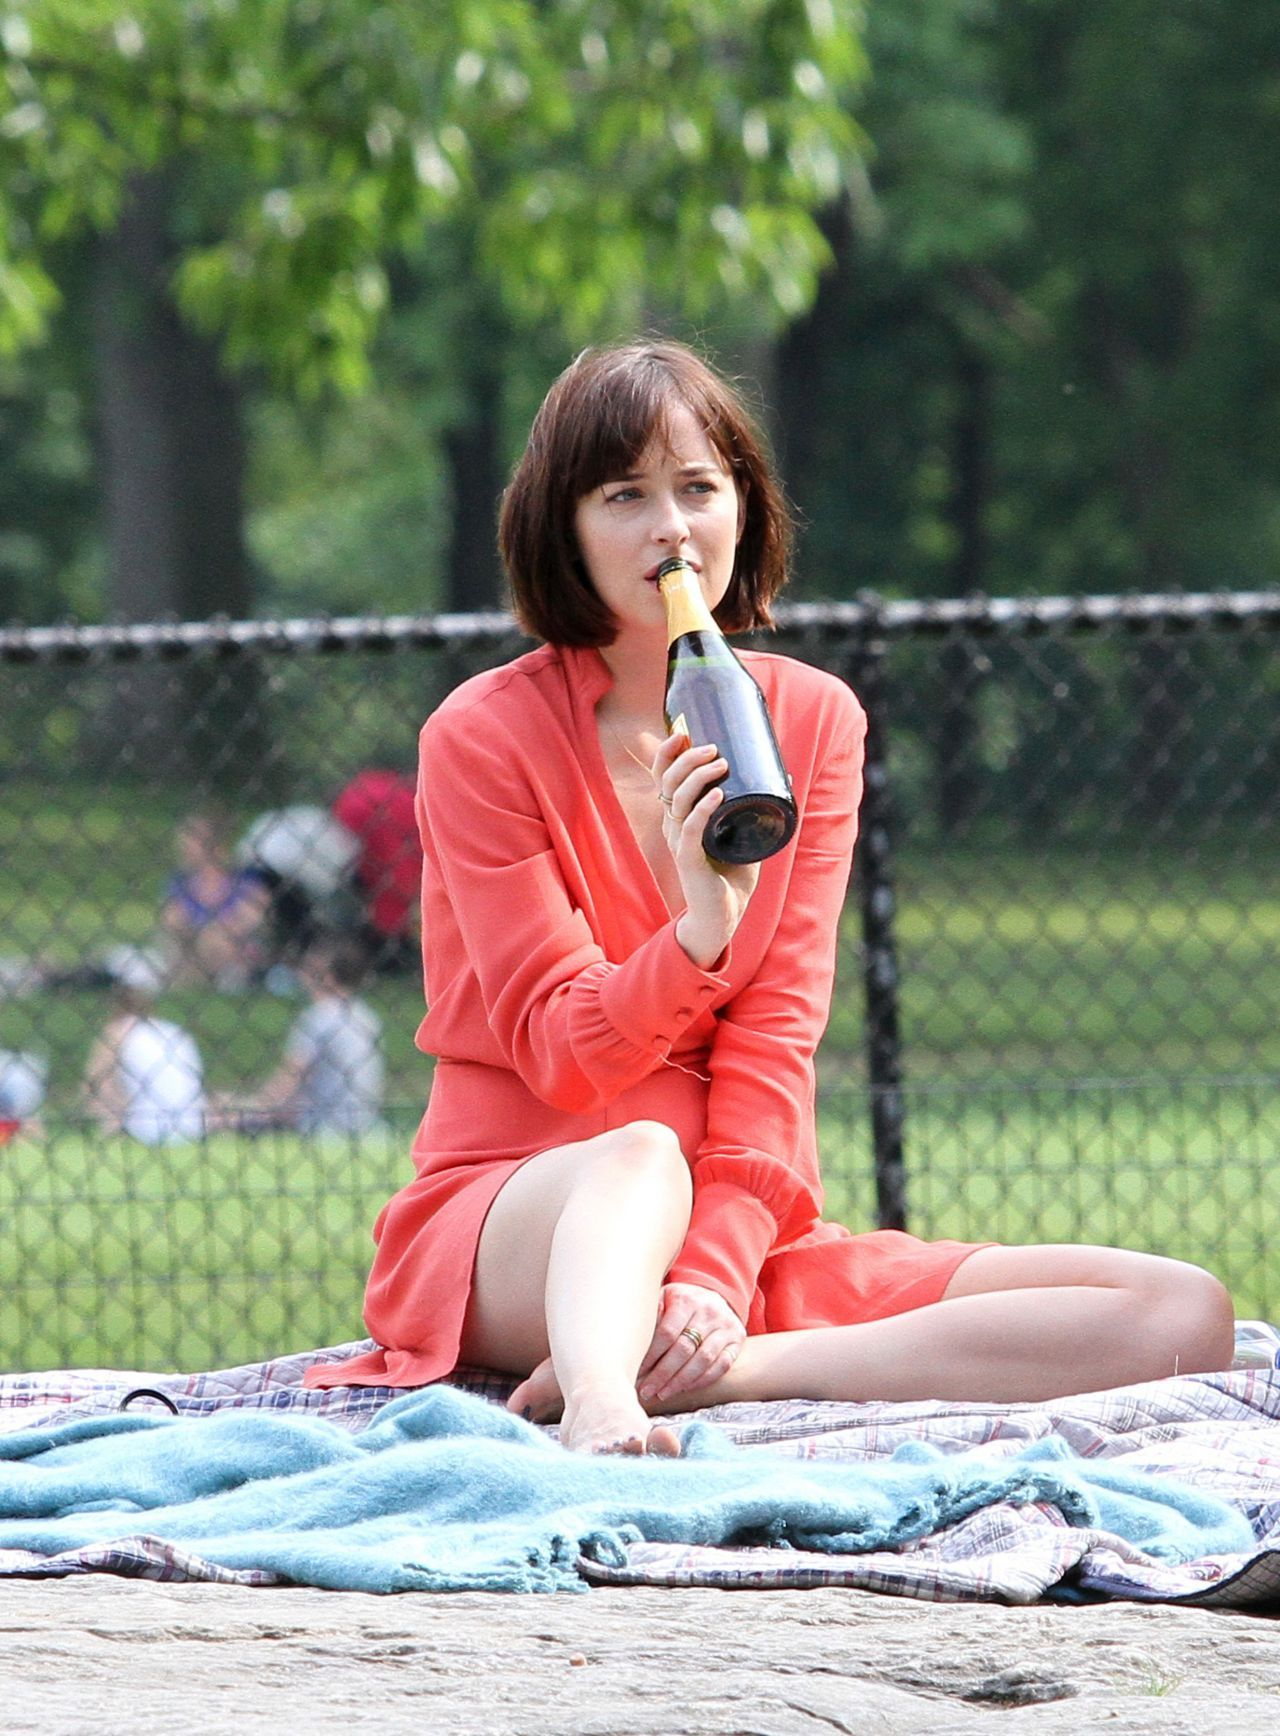 Dakota johnson at how to be single movie set in nyc dakota dakota johnson at how to be single movie set in nyc ccuart Images